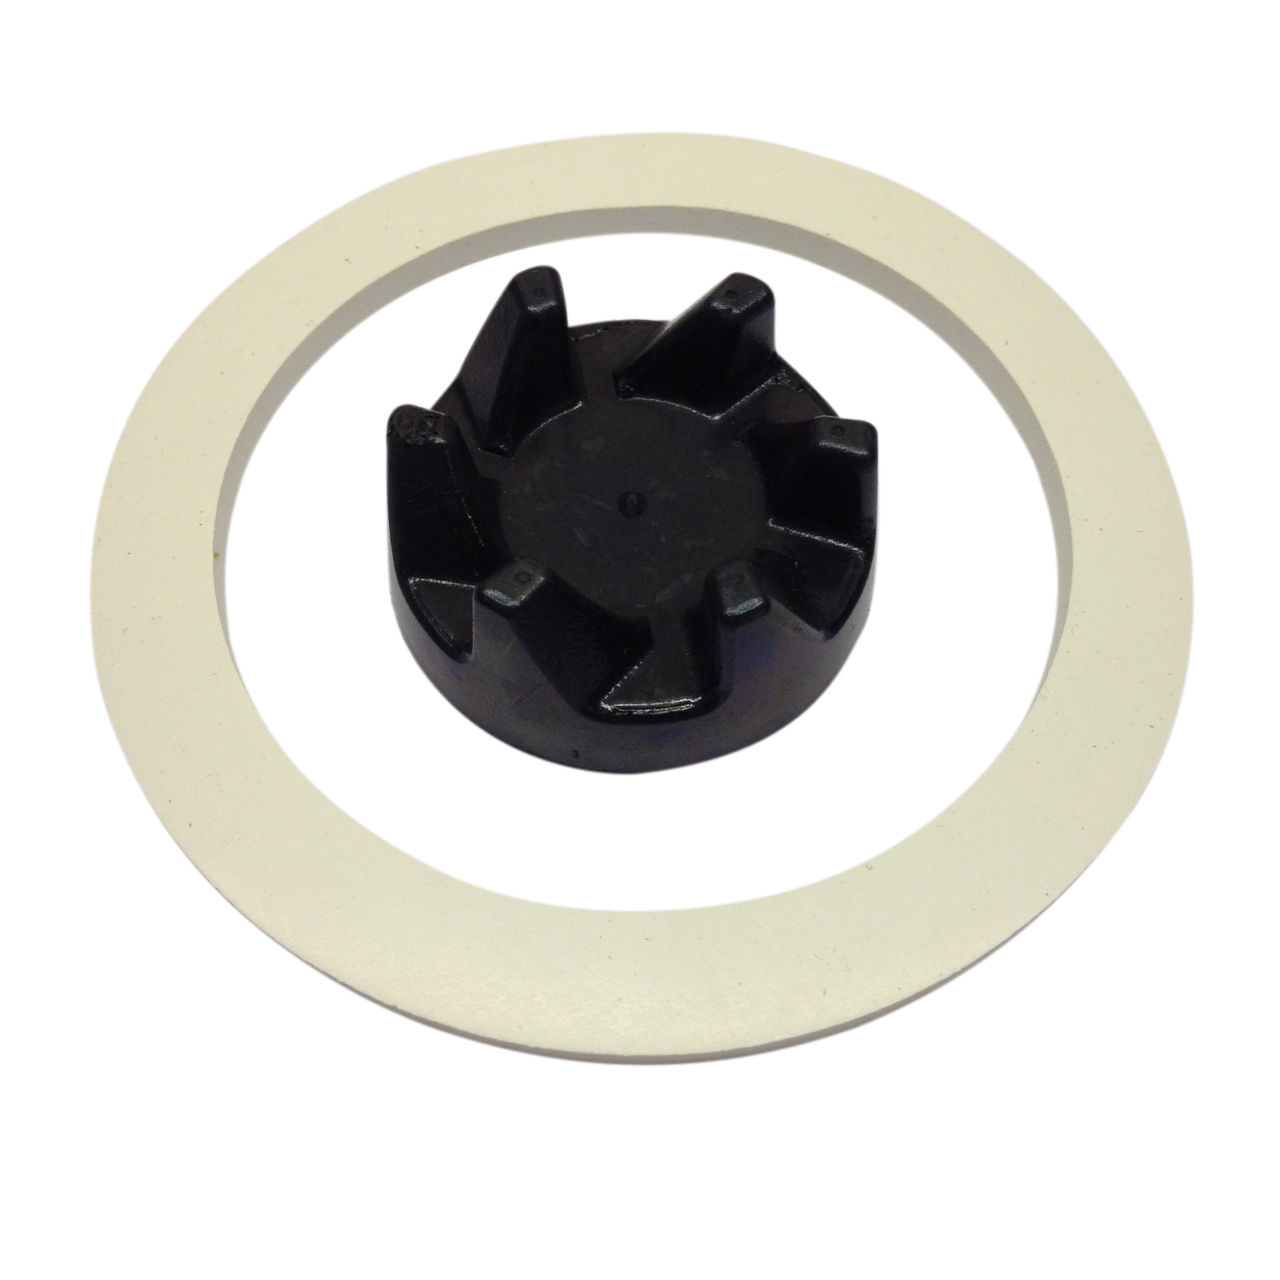 Magnificent Replacement Rubber Clutch Coupler Sa9704230 With A Replacement Jug Gasket Compatible With Kitchenaid Download Free Architecture Designs Scobabritishbridgeorg